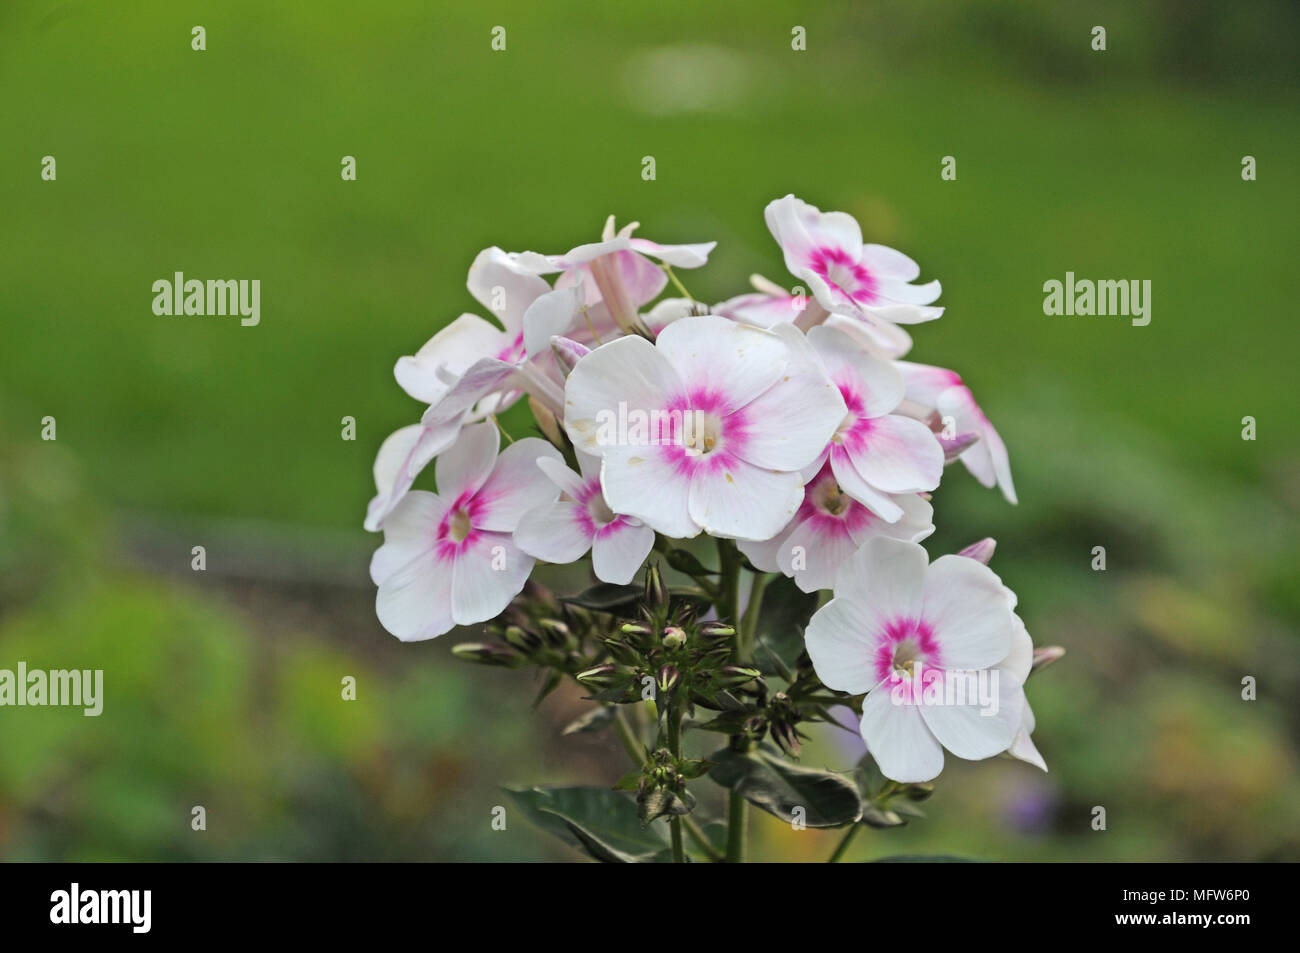 White and pink colored flowers of a garden phlox stock photo white and pink colored flowers of a garden phlox mightylinksfo